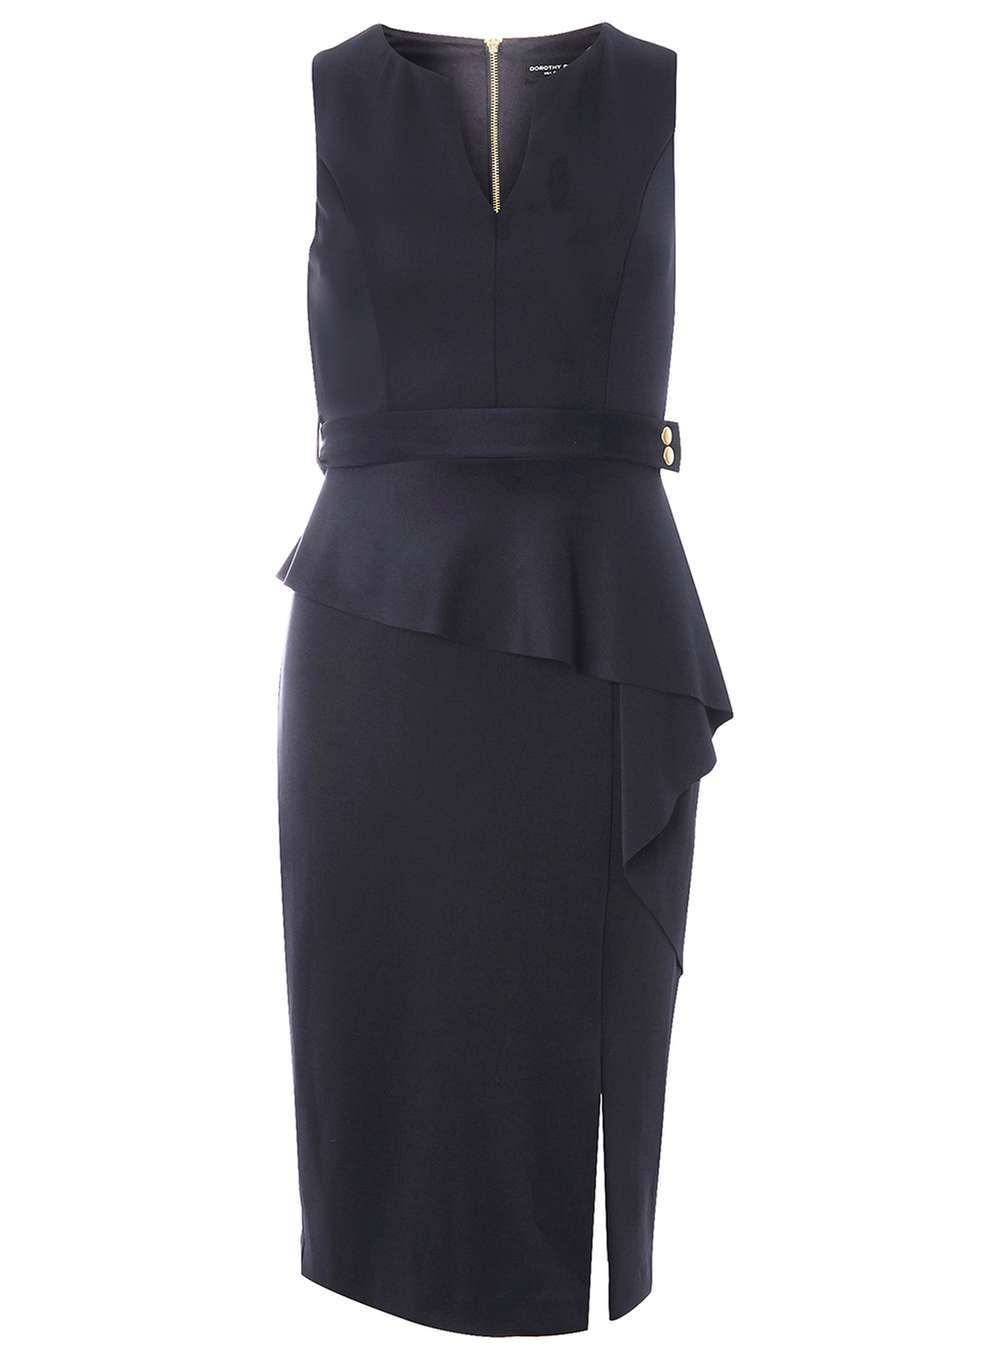 Womens Waterfall Pencil Dress Blue - style: shift; neckline: v-neck; fit: tailored/fitted; pattern: plain; sleeve style: sleeveless; hip detail: draws attention to hips; waist detail: peplum waist detail; predominant colour: navy; occasions: evening; length: on the knee; fibres: polyester/polyamide - stretch; sleeve length: sleeveless; pattern type: fabric; texture group: other - light to midweight; season: a/w 2016; wardrobe: event